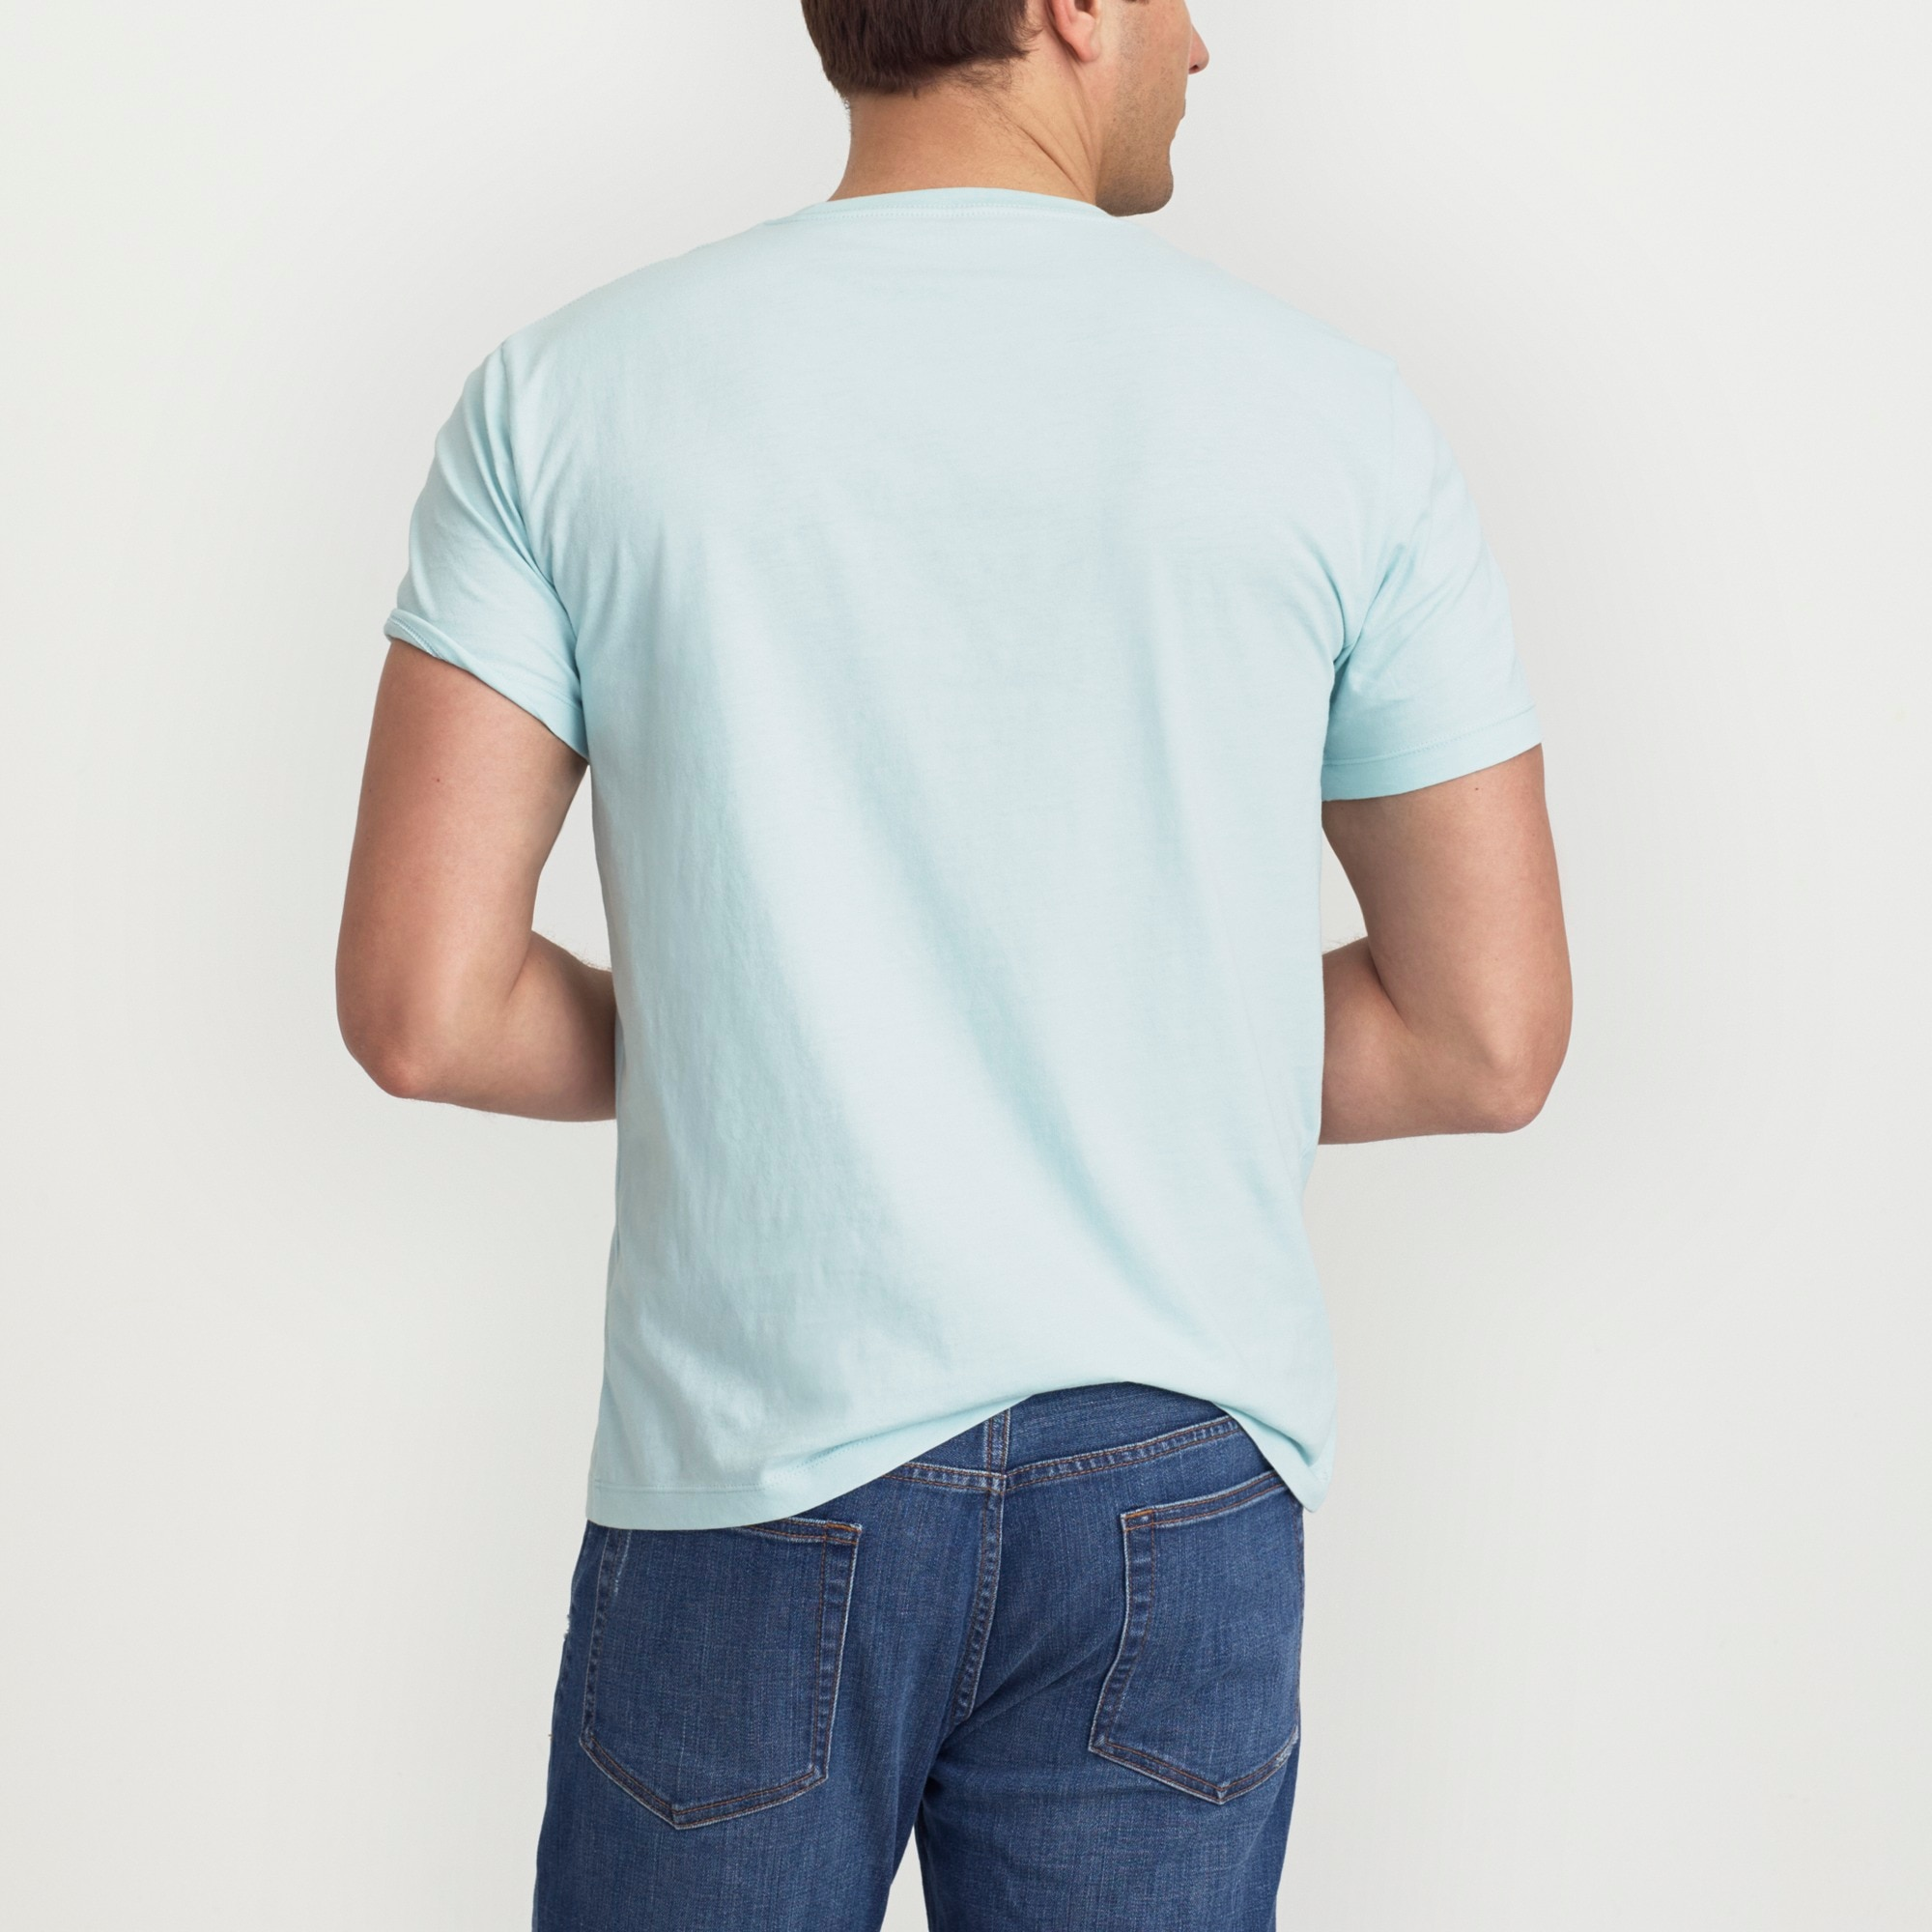 Image 3 for J.Crew Mercantile slim Broken-in T-shirt